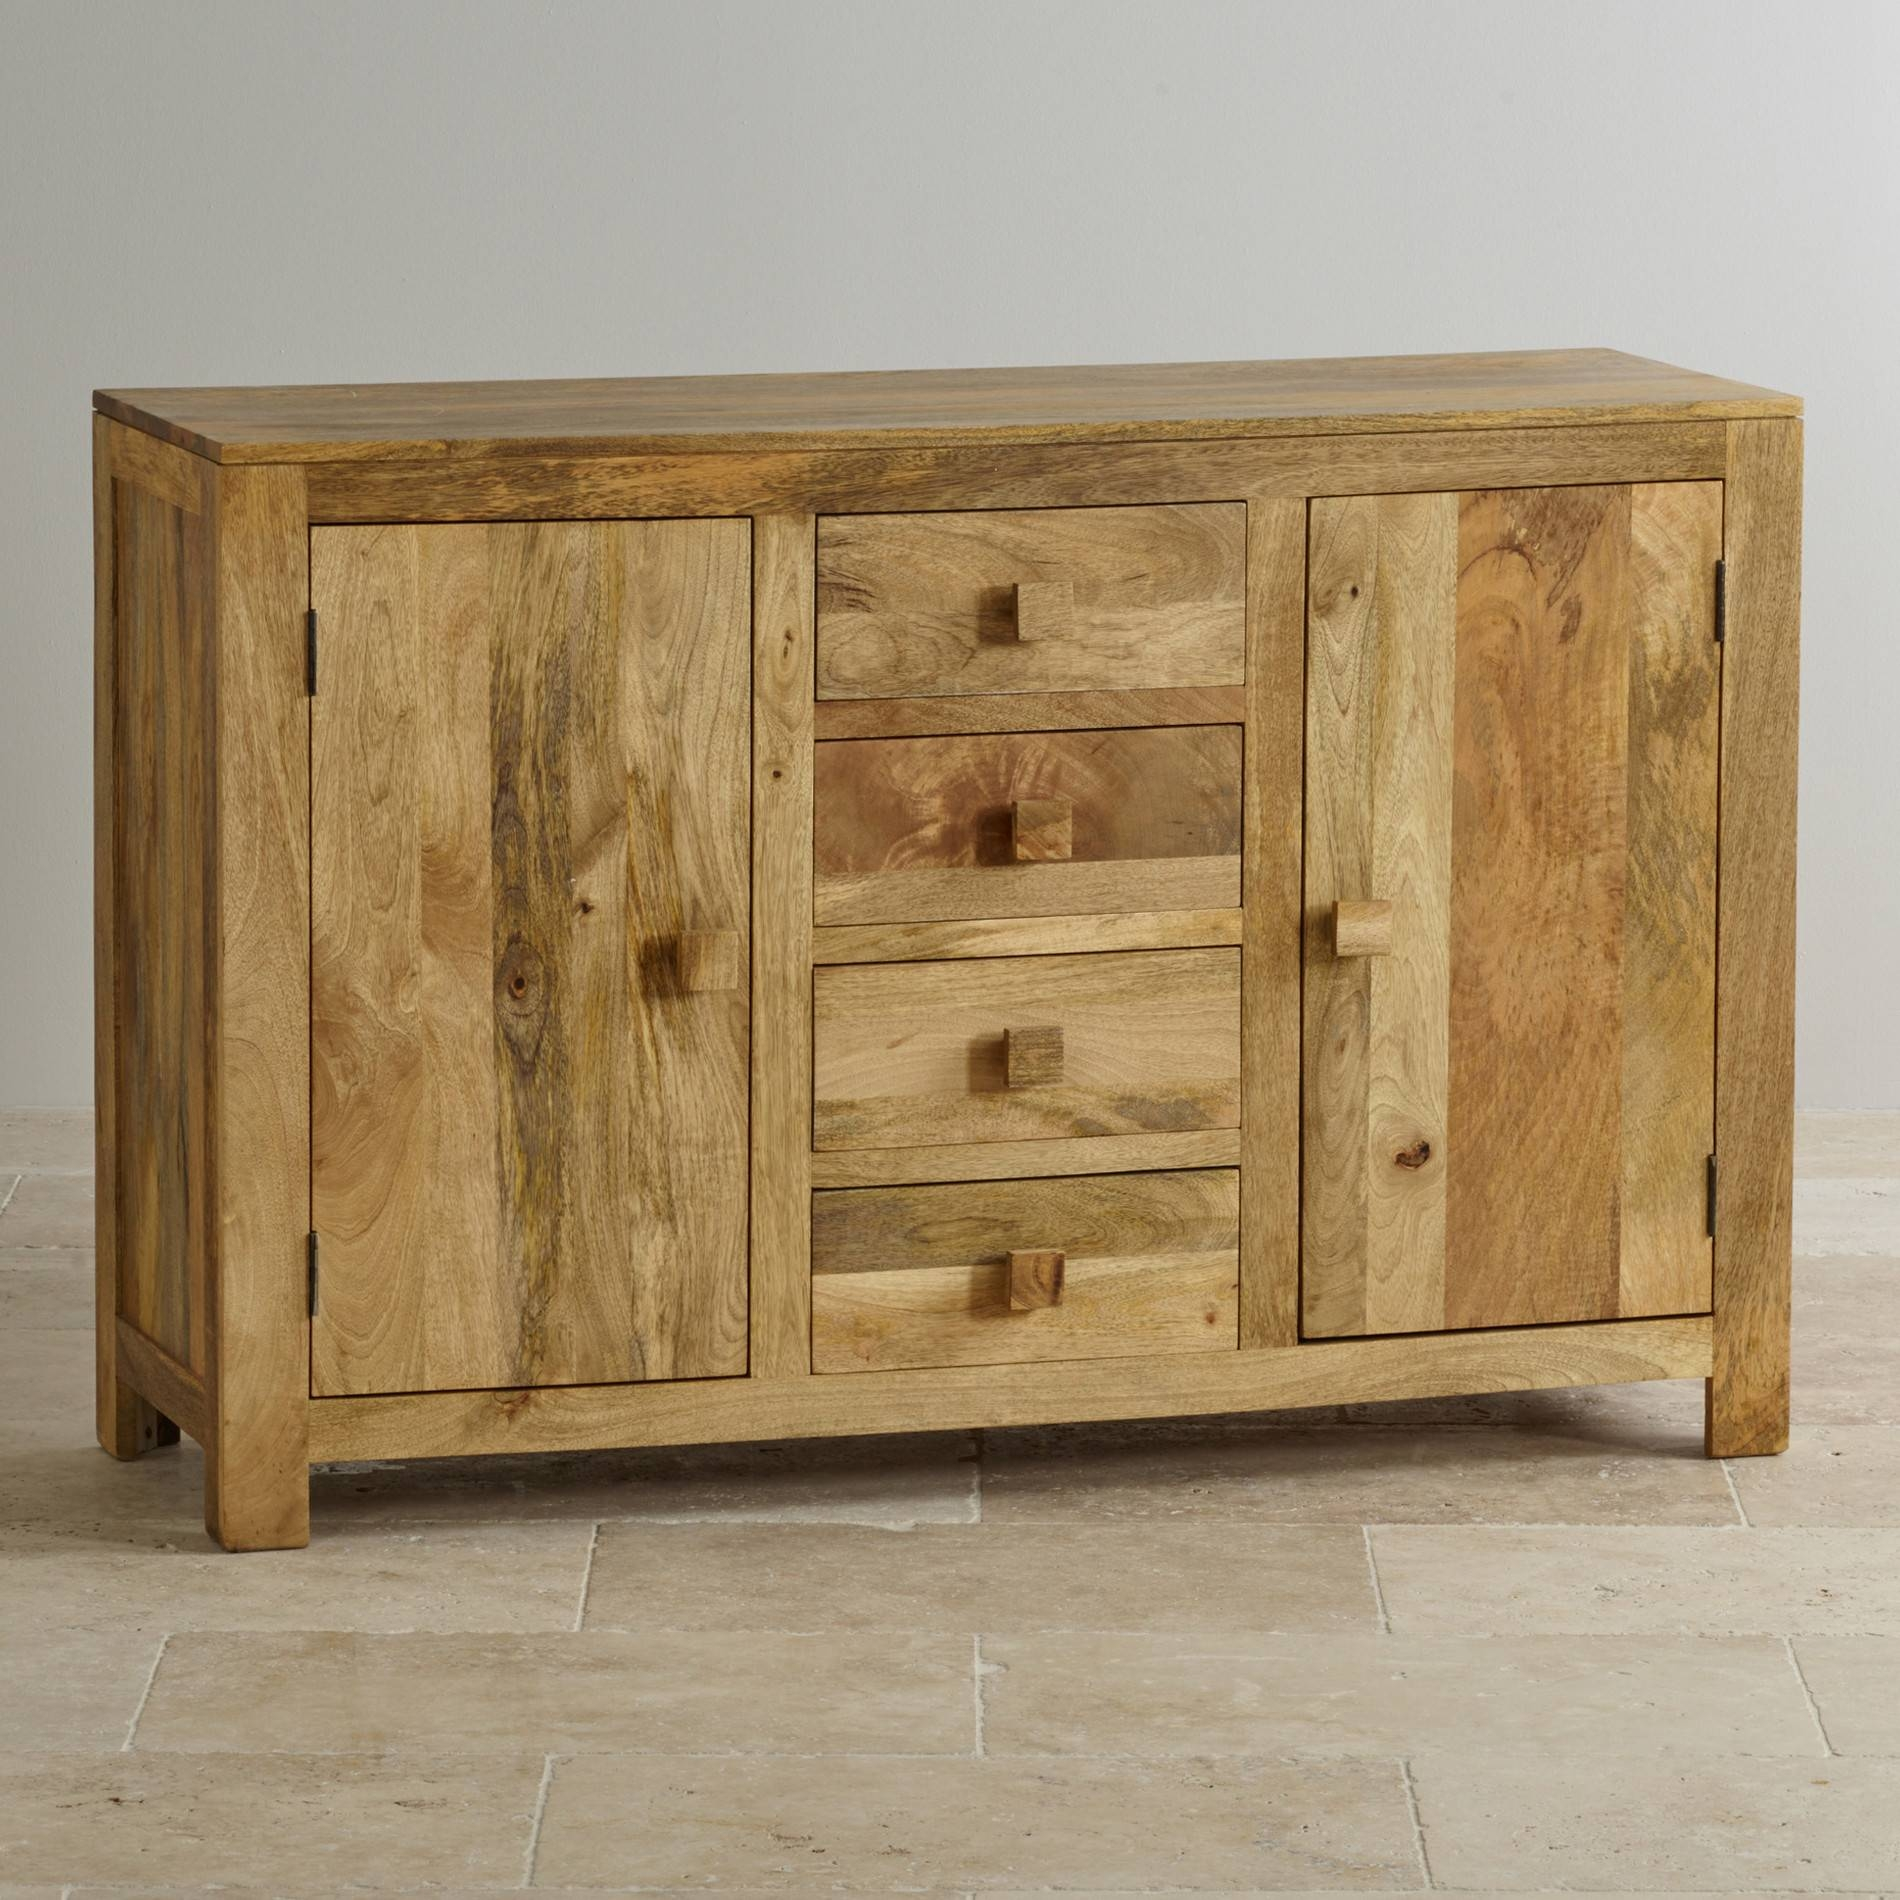 Mantis Light Dressing Table In Solid Mango | Oak Furniture Land within Real Wood Sideboards (Image 4 of 30)